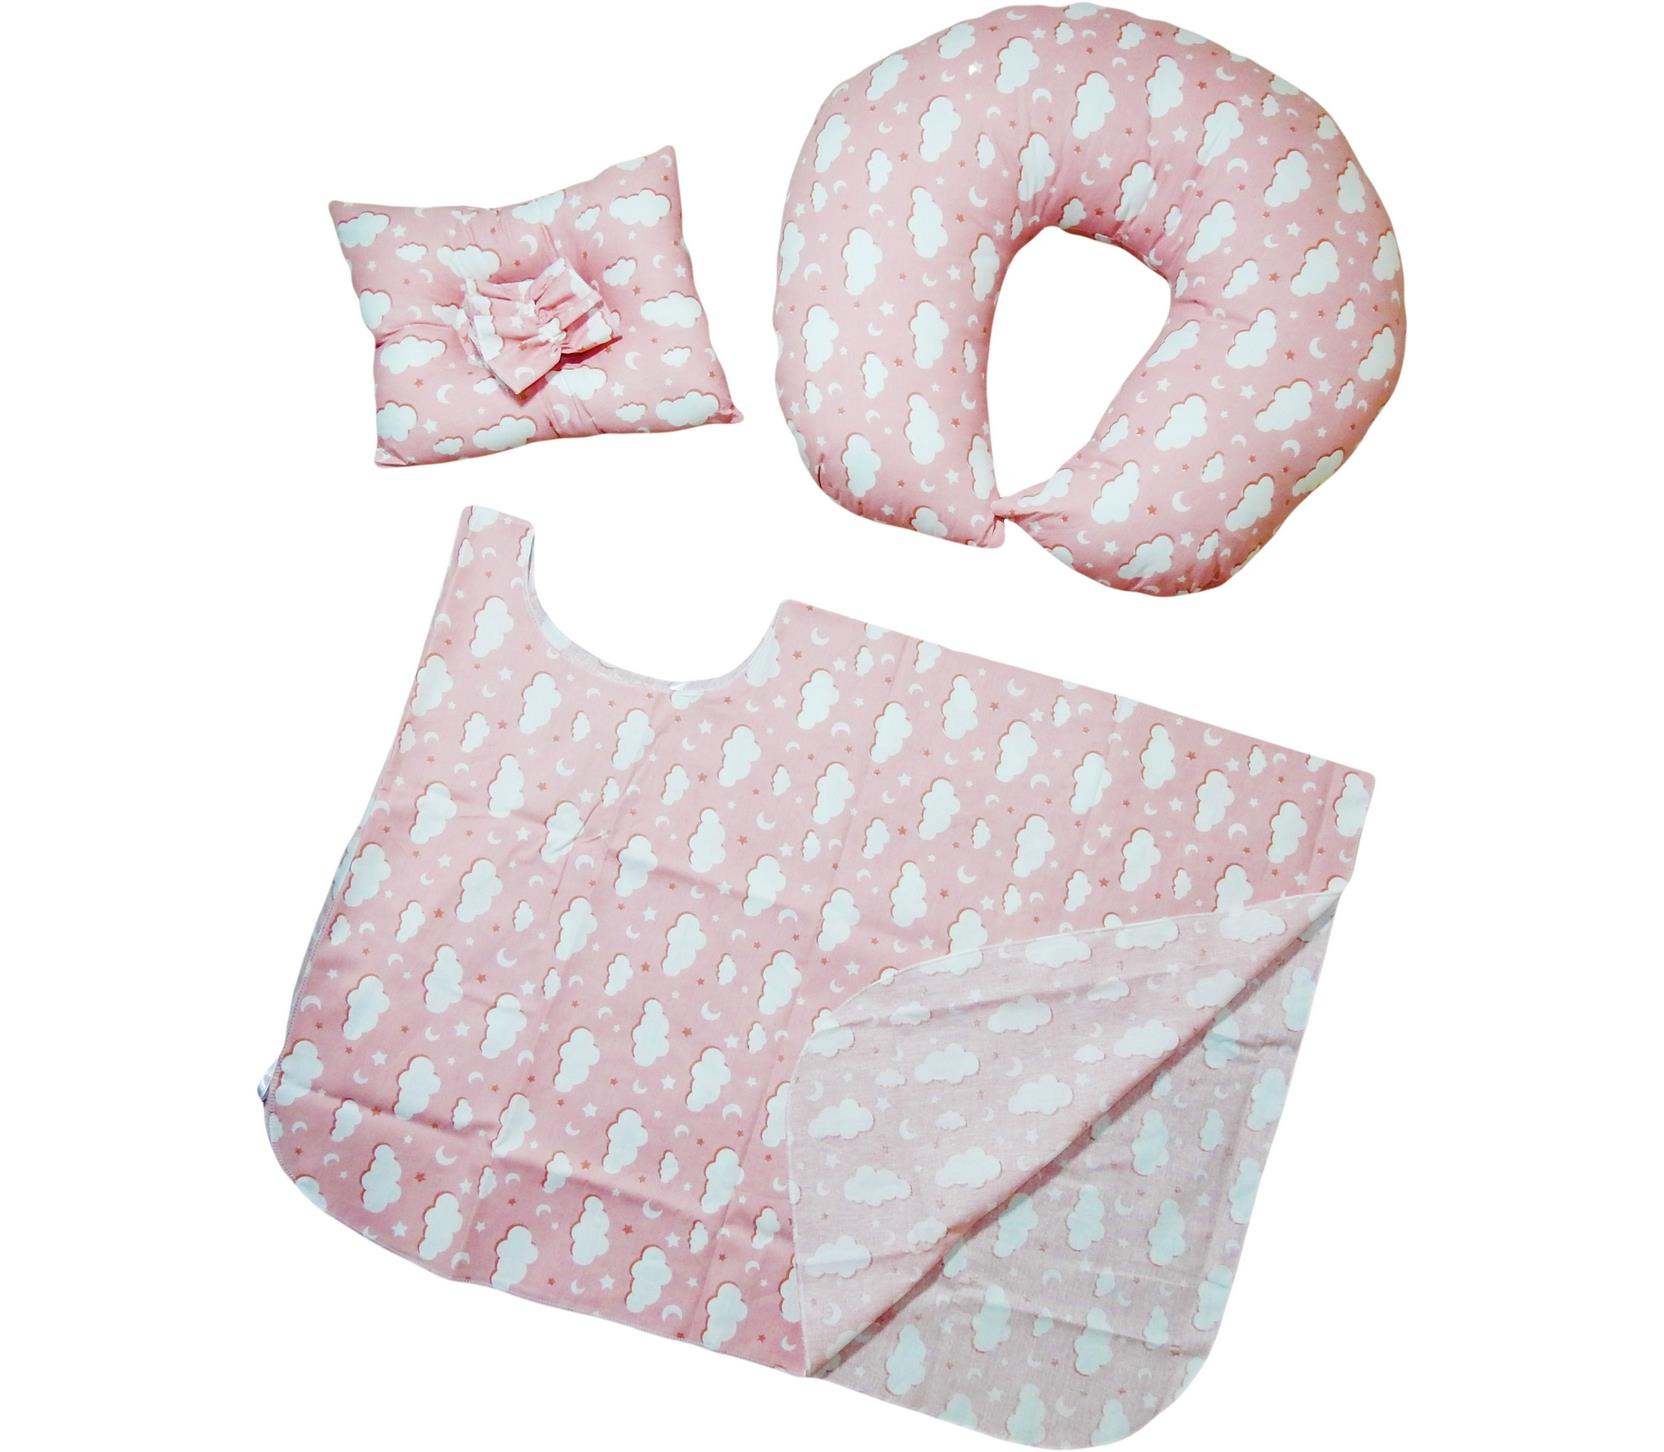 98 Wholesale breast feeding set for baby